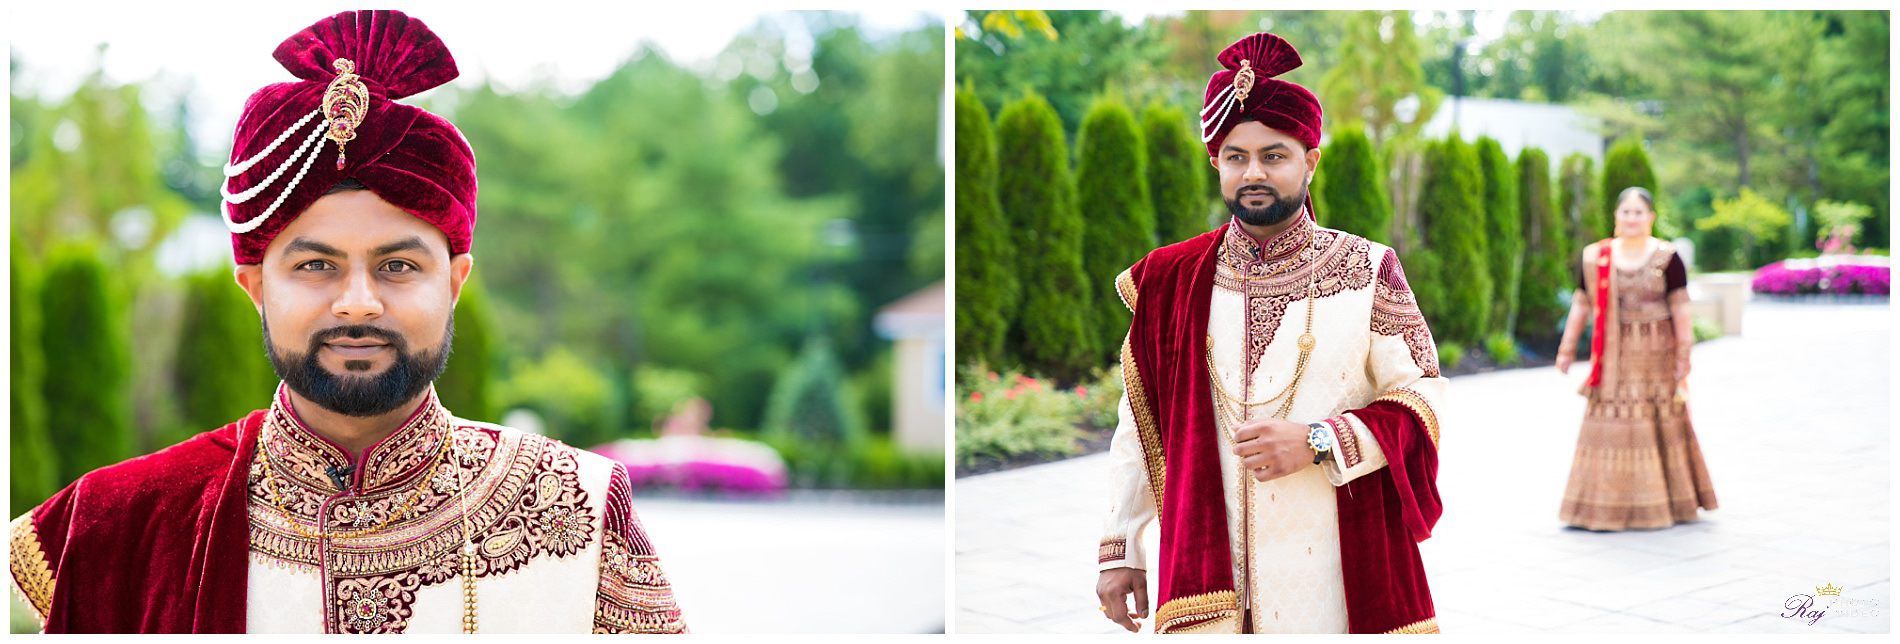 Marigold Somerset Nj Hindu Wedding Zalak Parag